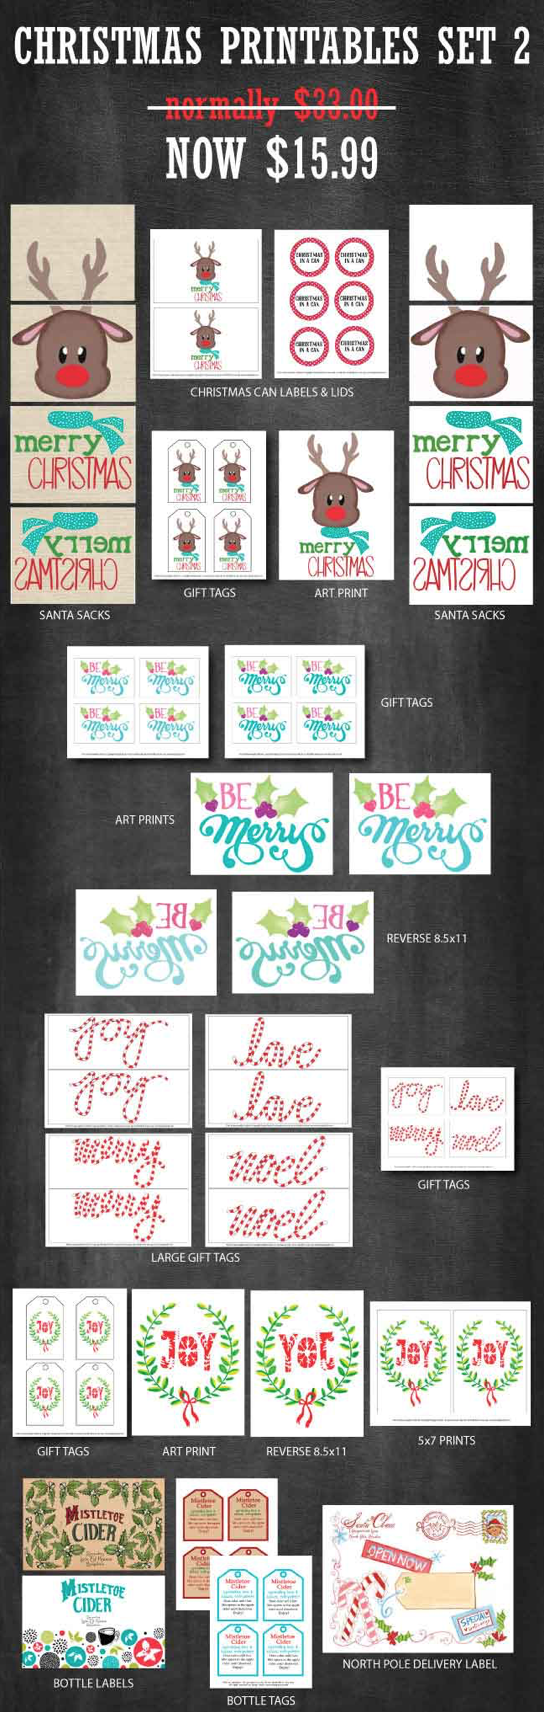 Christmas Printables Set | printables for Christmas | Christmas fun | Christmas decor | decorating for Christmas || Design Dazzle #christmasprintables